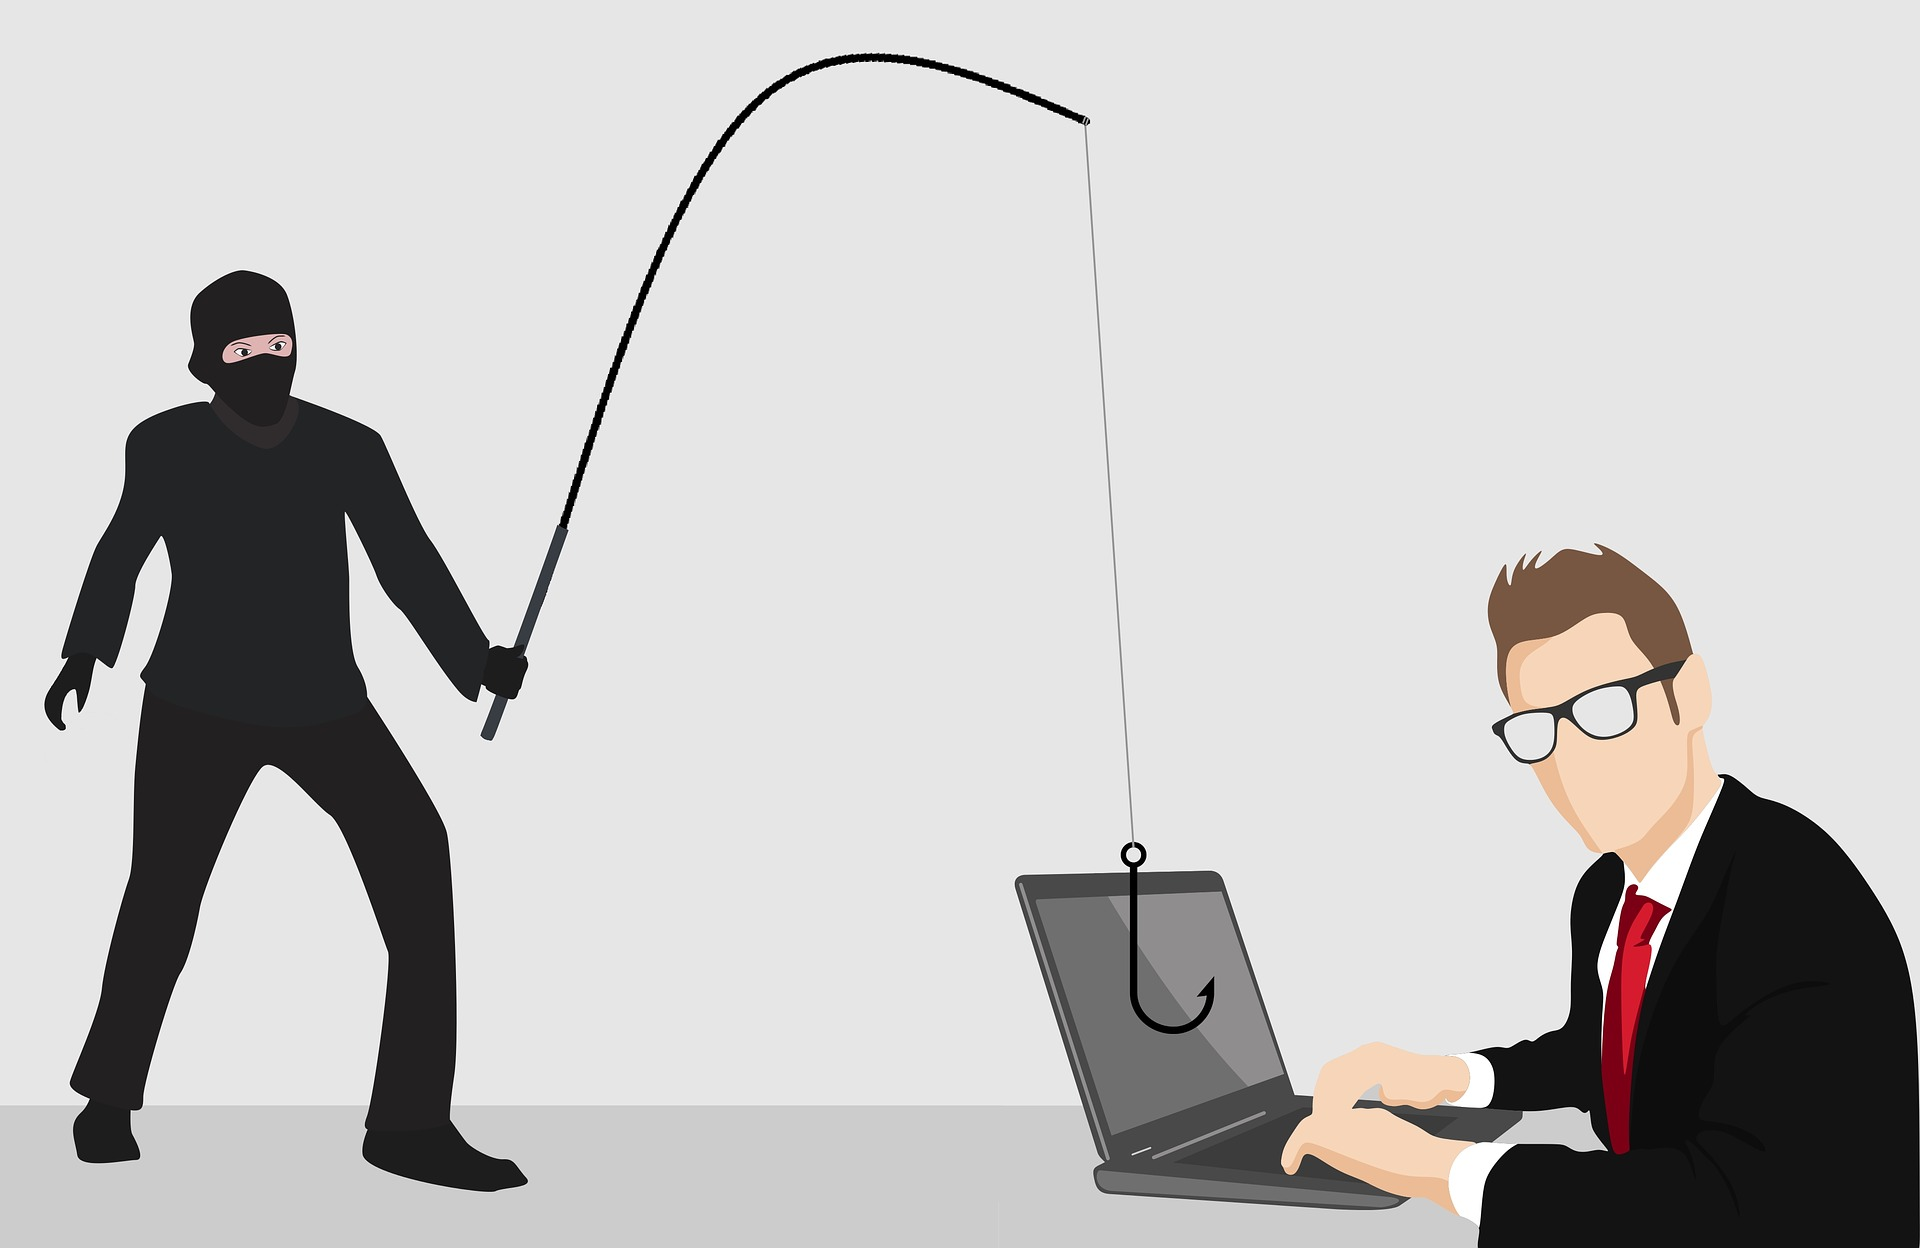 Beware of Chase Bank Phishing Messages Sent by Cybercriminals